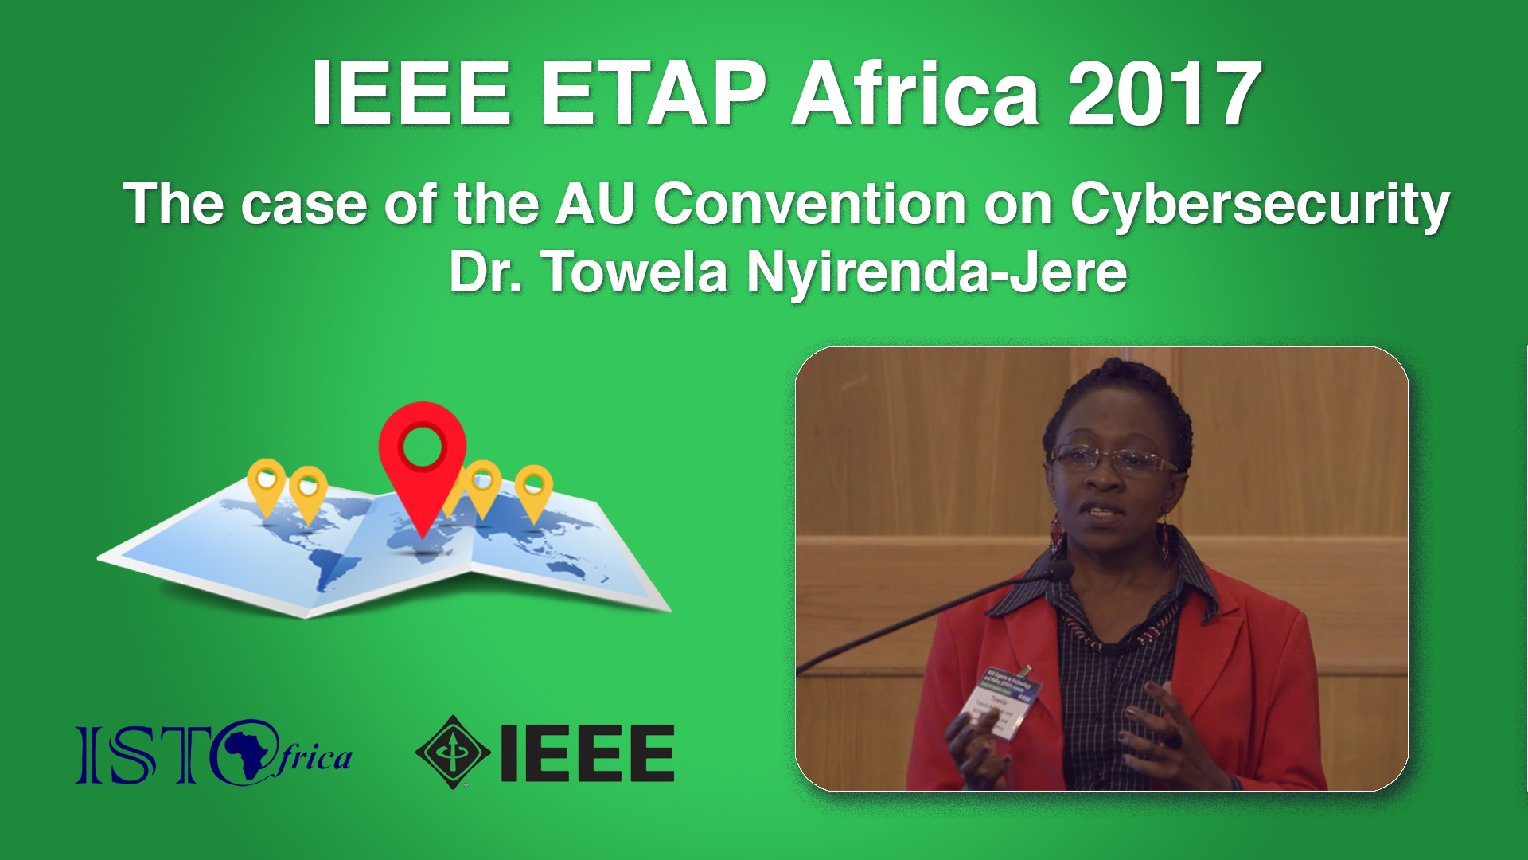 Cybersecurity and Multi-Stakeholder Internet Governance - The AU Convention on Cybersecurity: Towela Nyirenda-Jere - ETAP Forum Namibia, Africa 2017